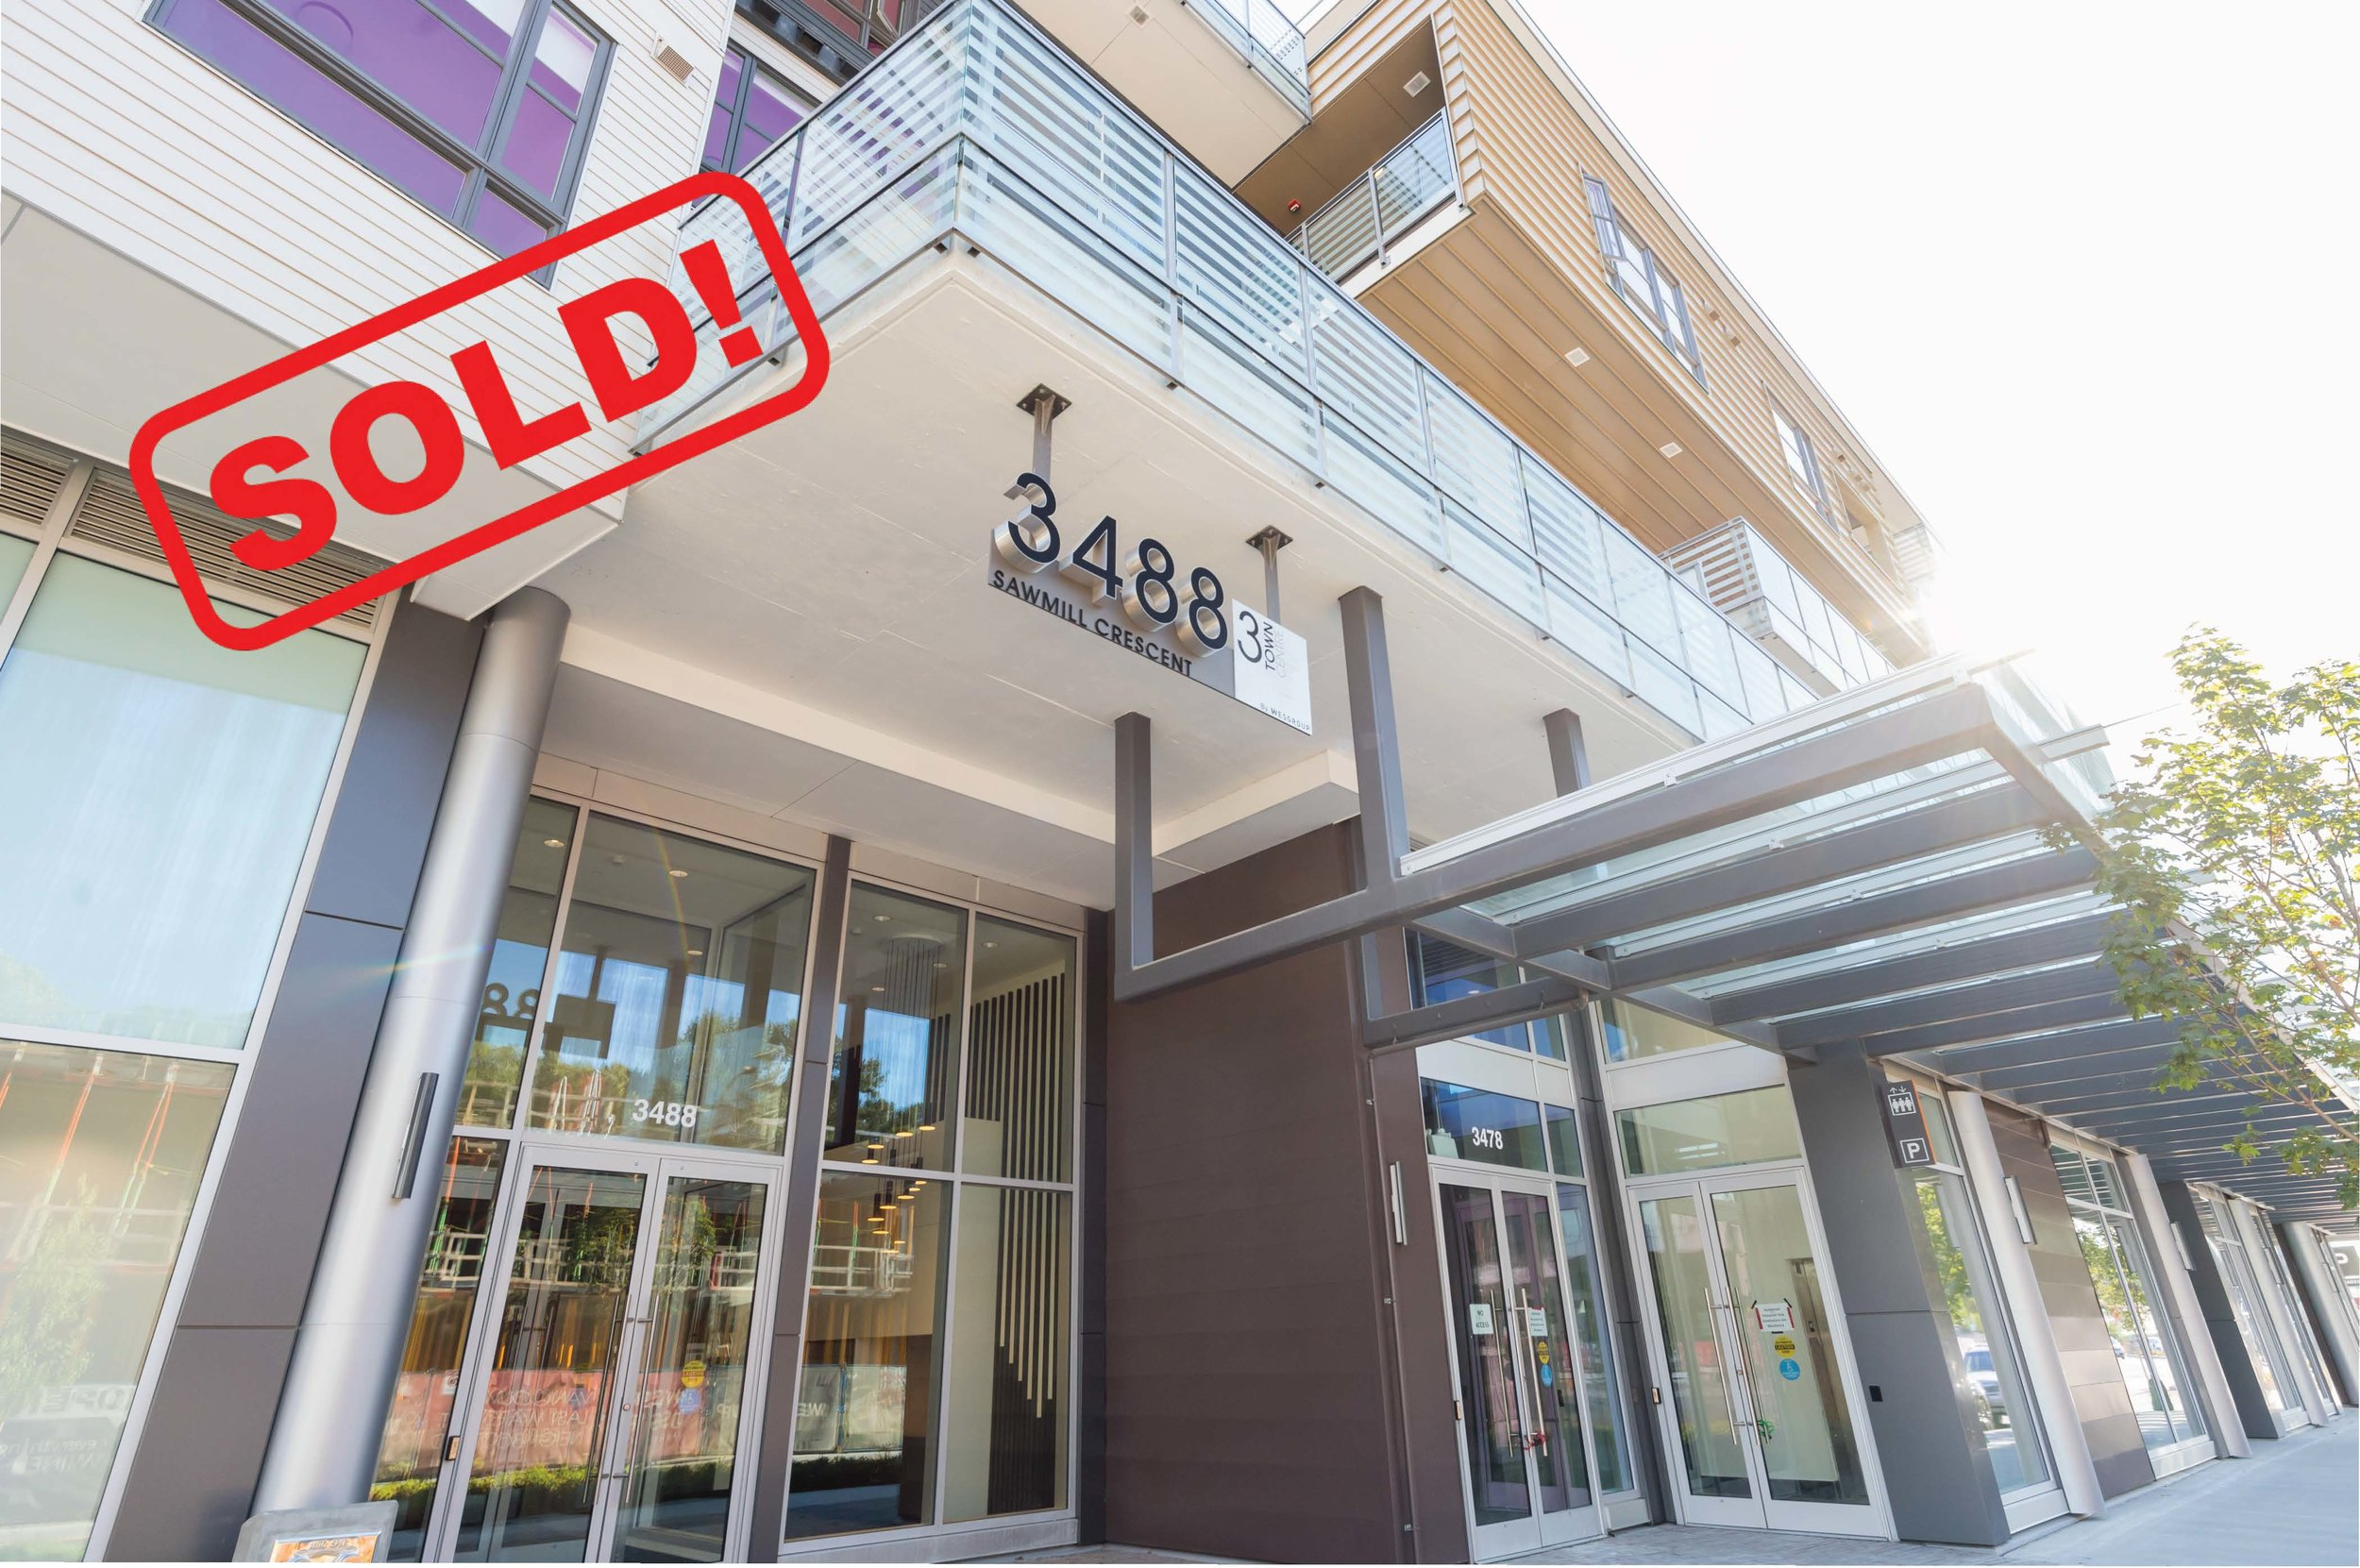 301-3488 SAWMILL CRESCENT     SOLD FOR: $495,000  1 BED | 1 BATH | 595 SF